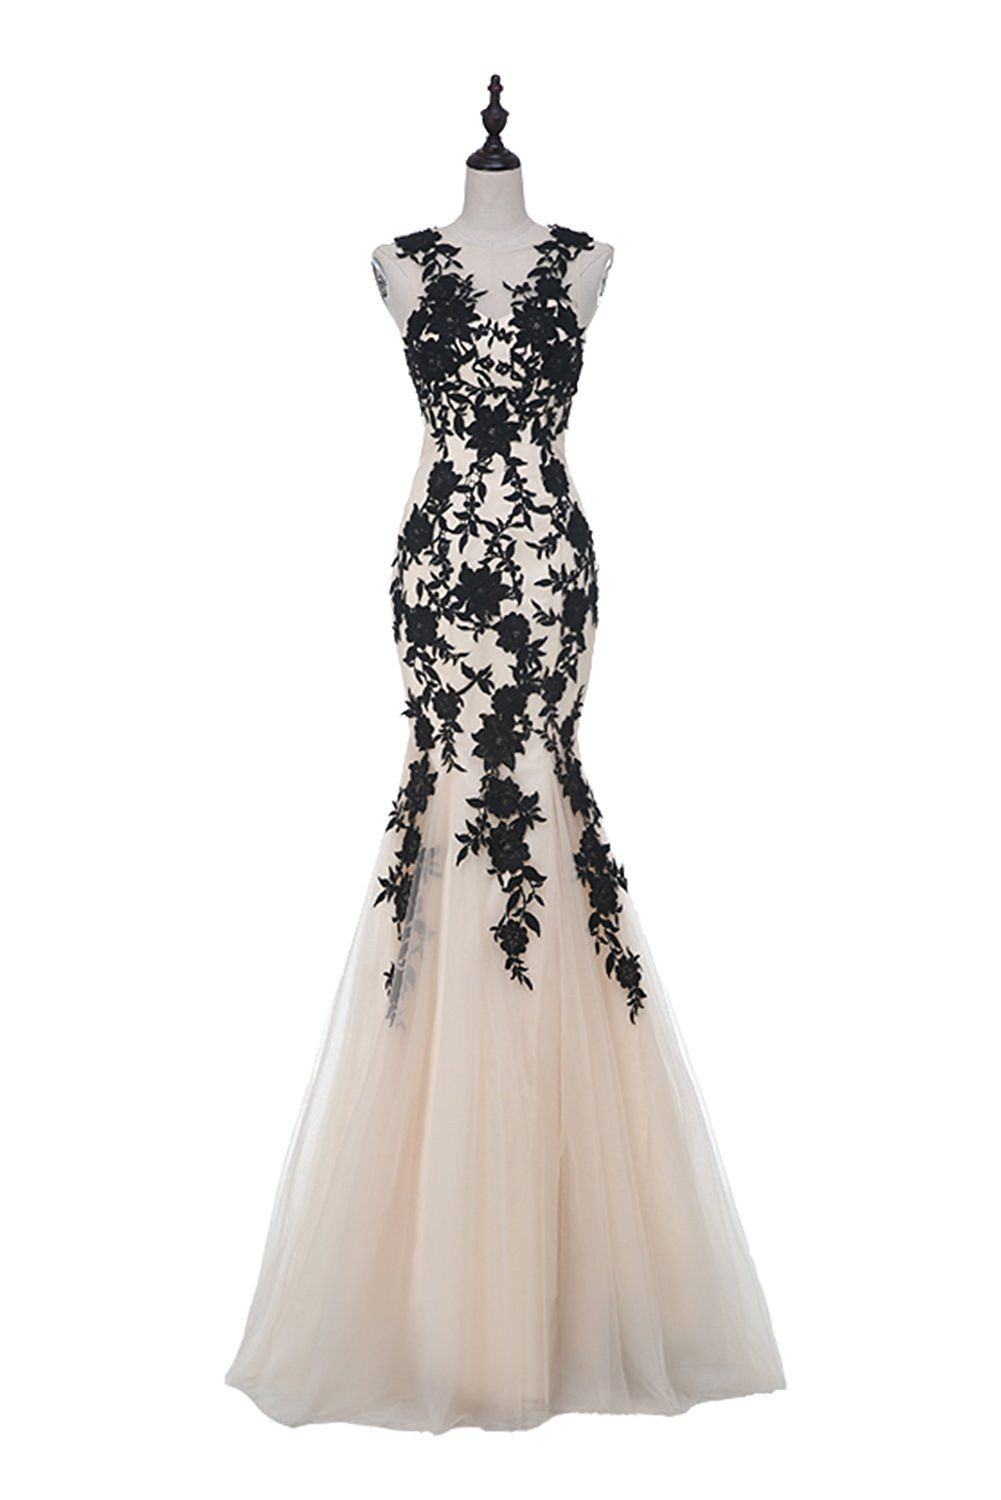 Champagne sleeveless mermaid appliques evening dressses champagne